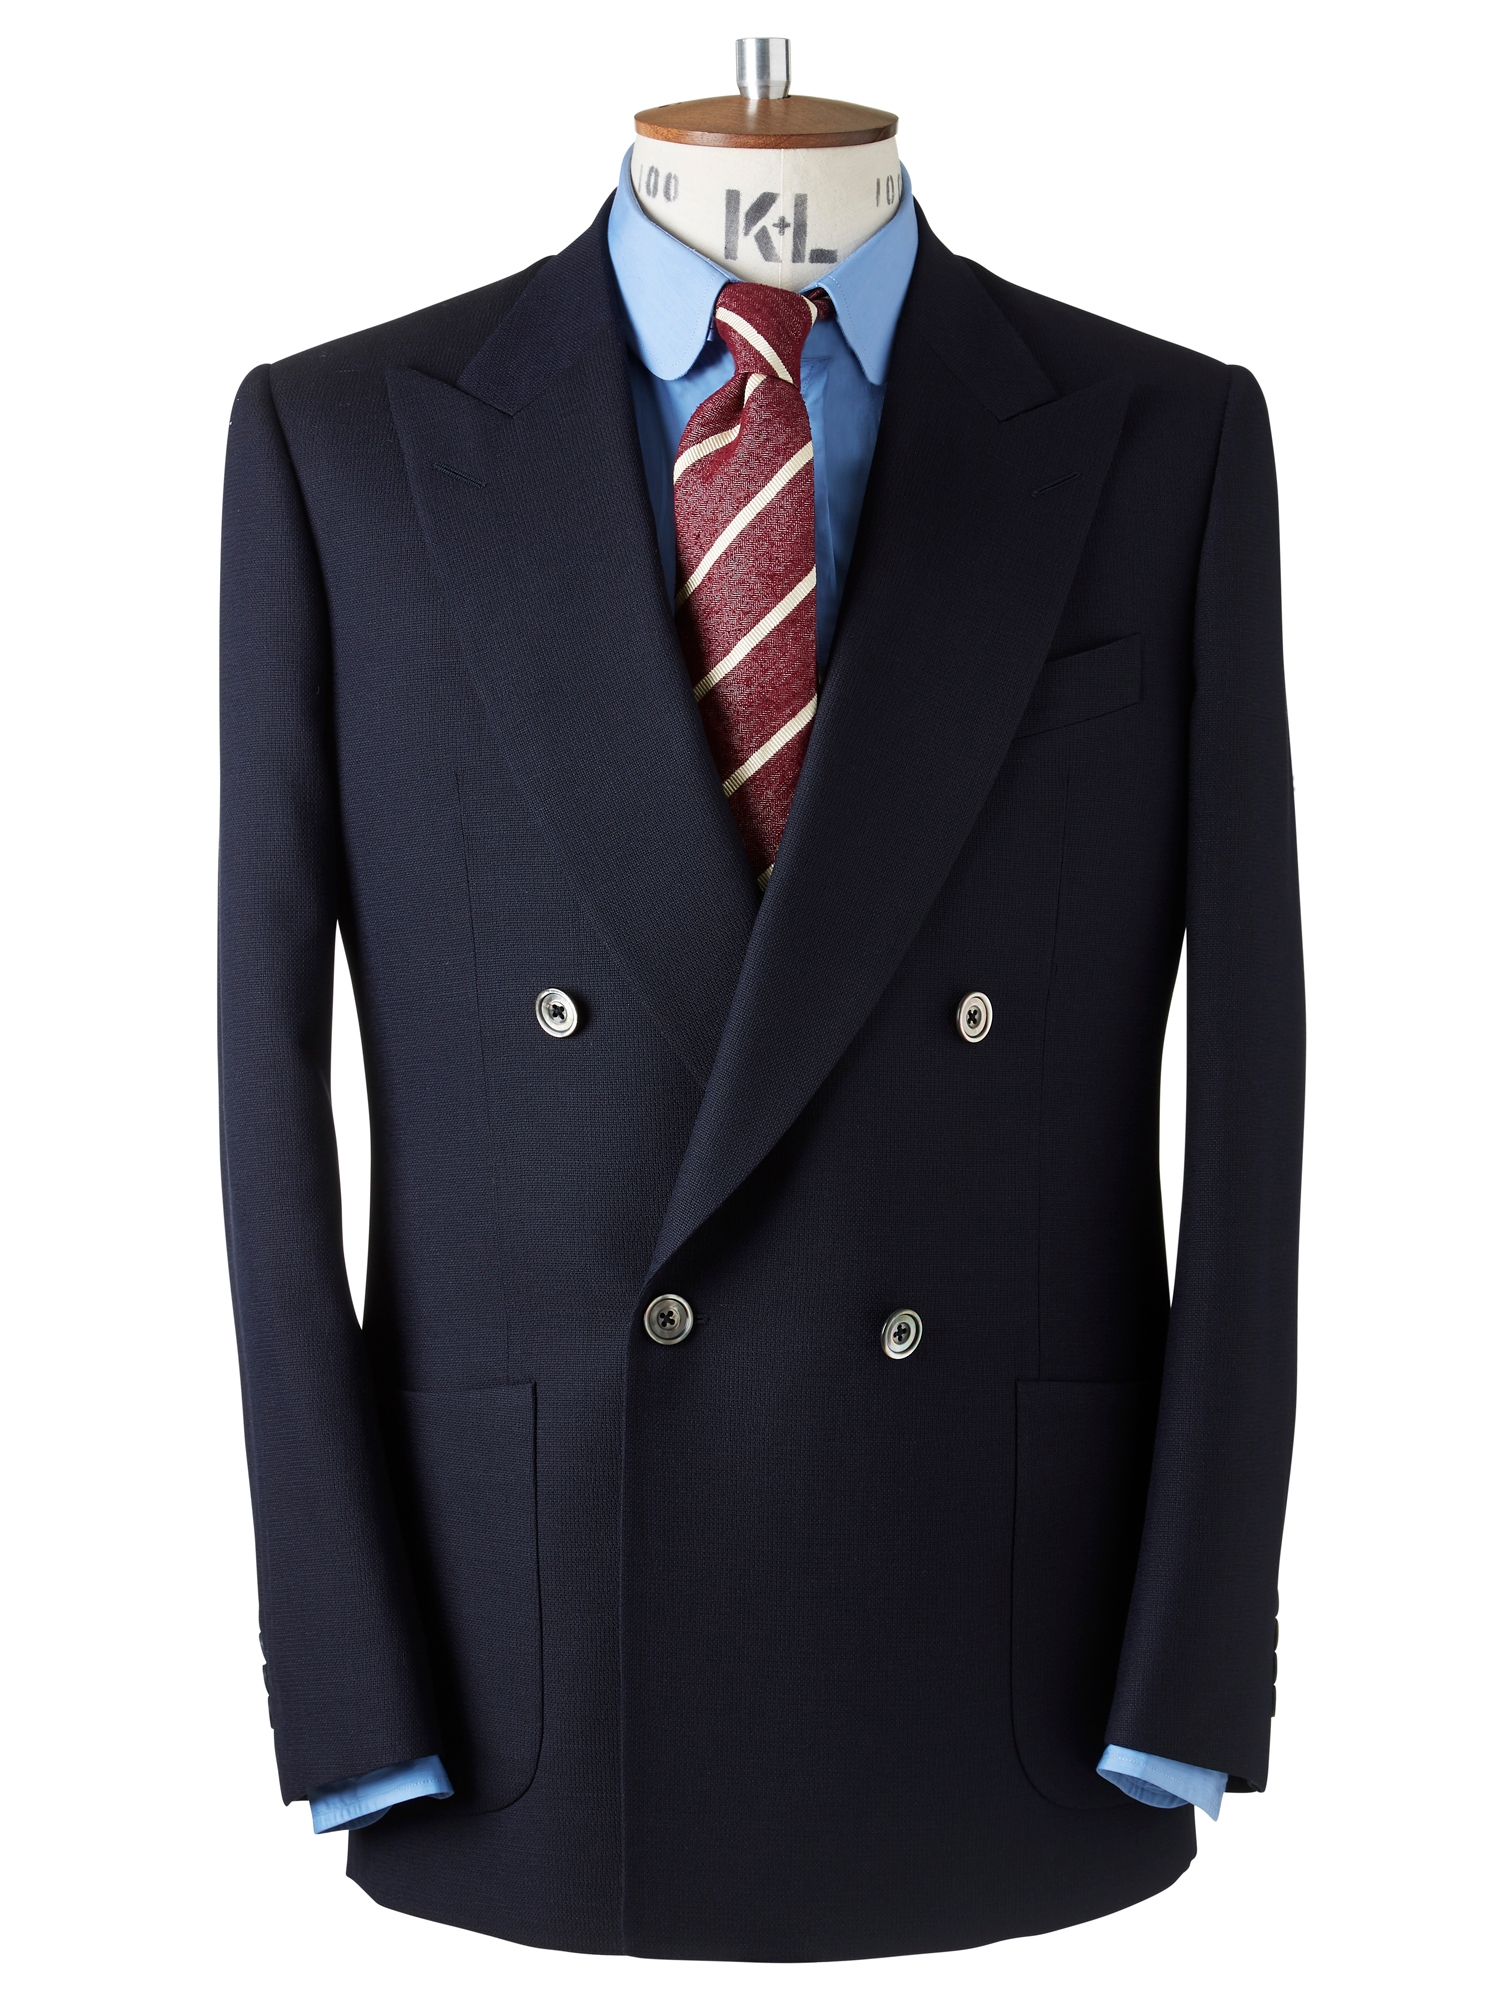 CHESTER BARRIE MESH KINGLY JACKET